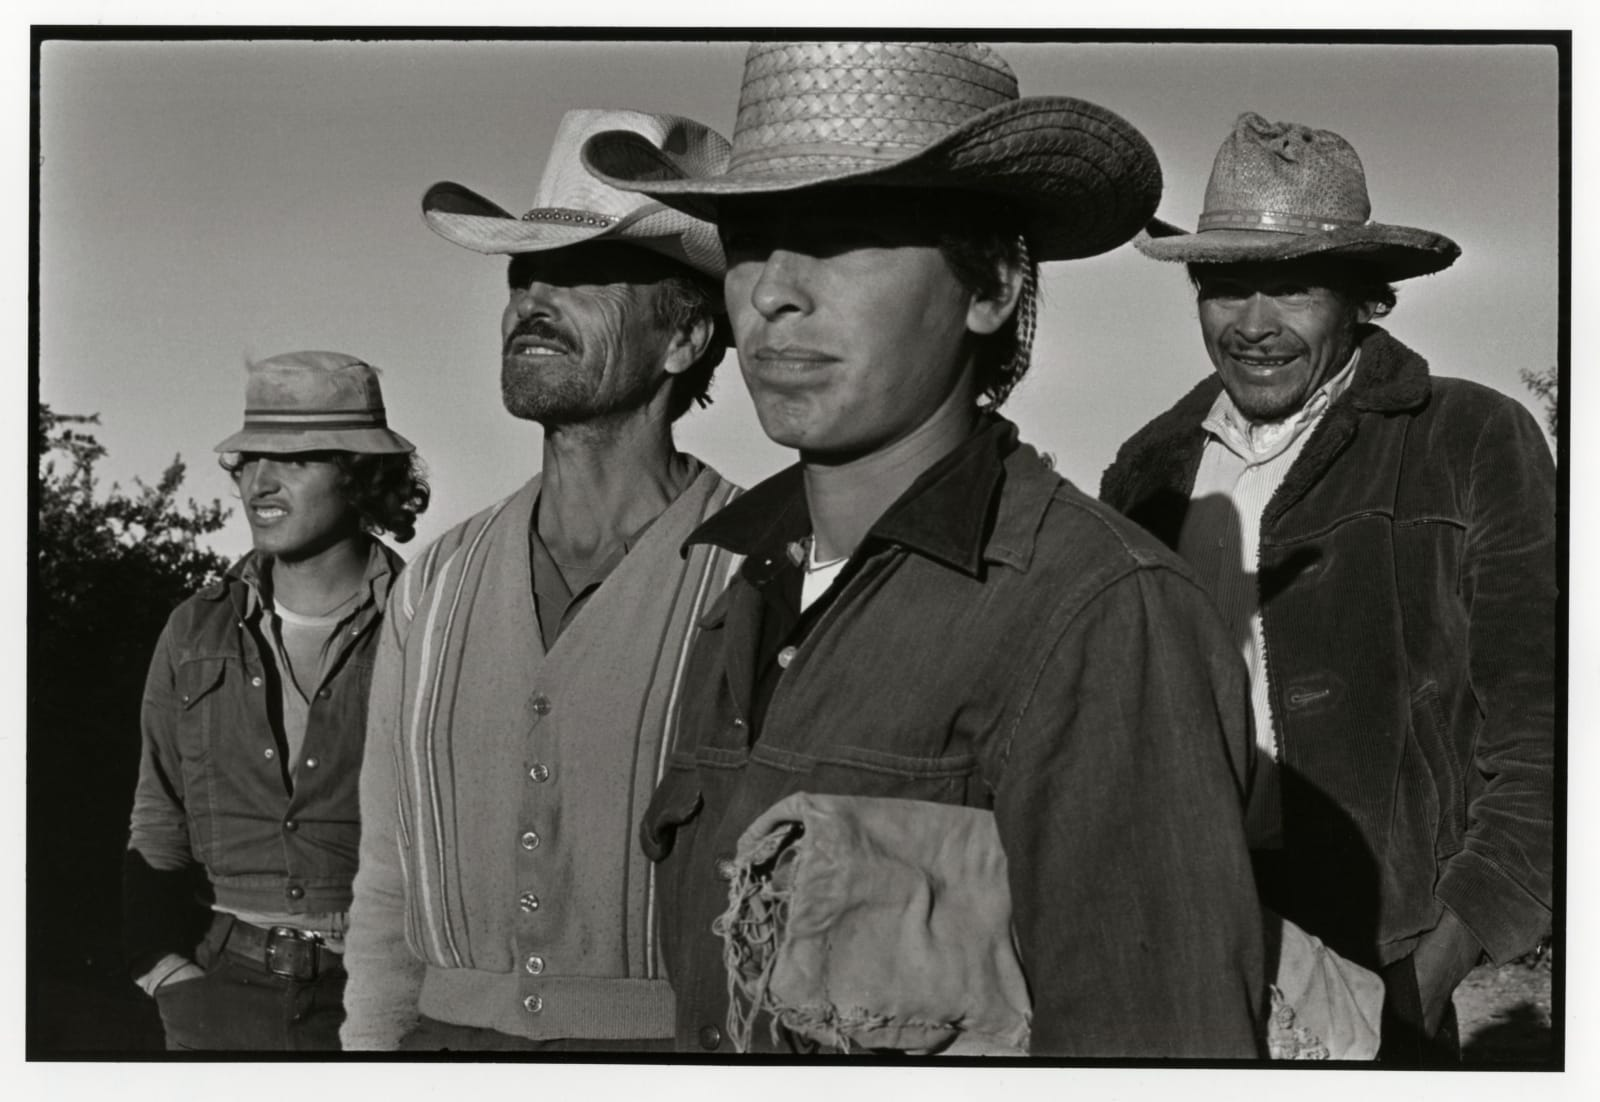 Danny Lyon - The Garay Family, Maricopa County, Arizona, 1973